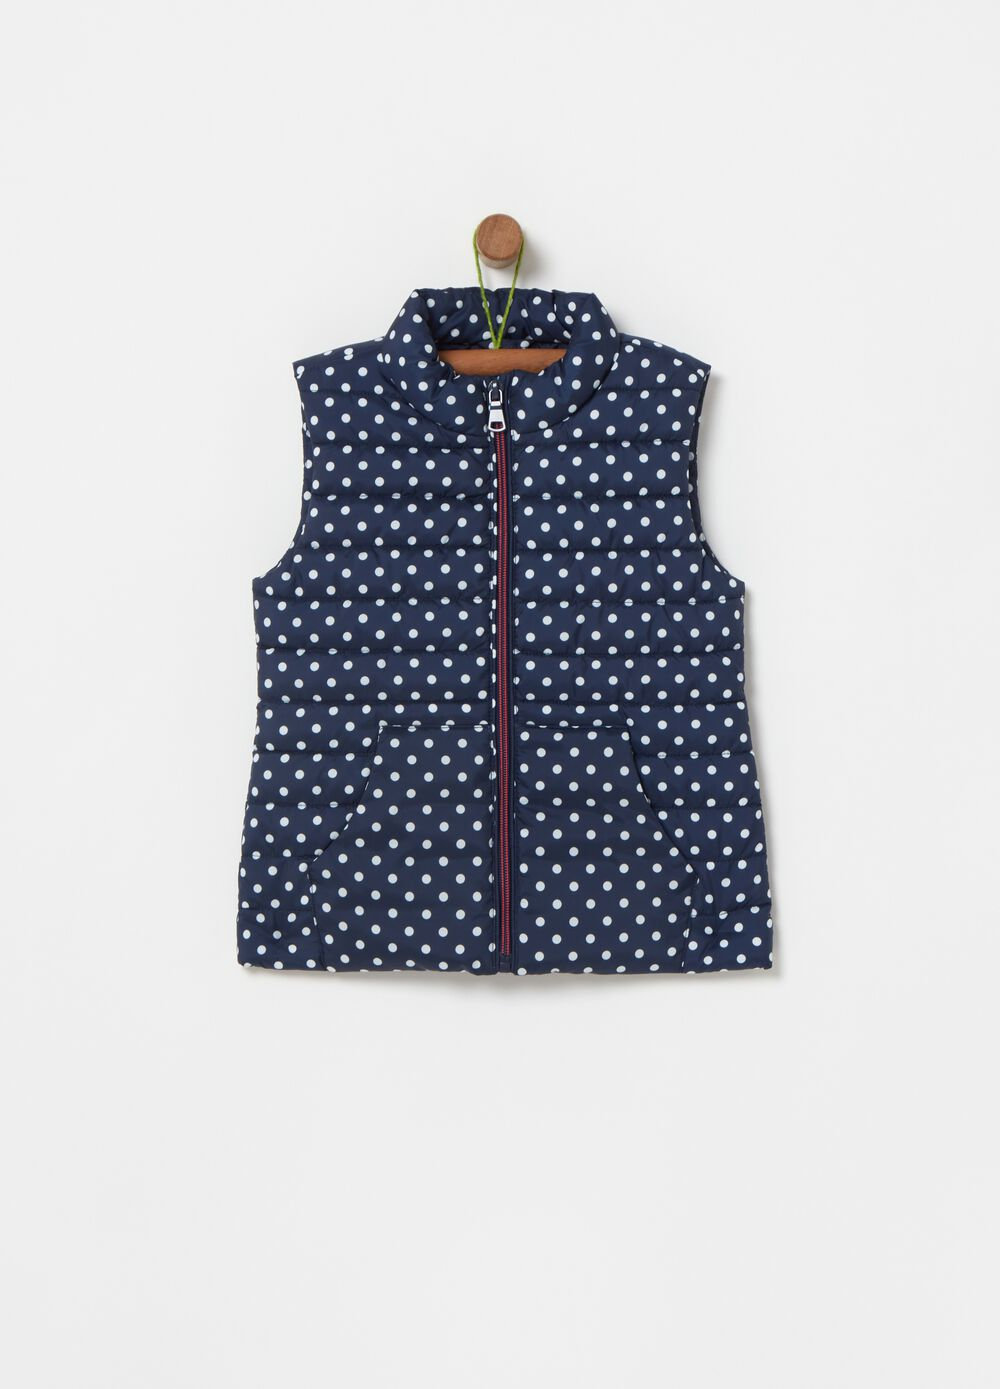 Padded and quilted gilet with polka dots